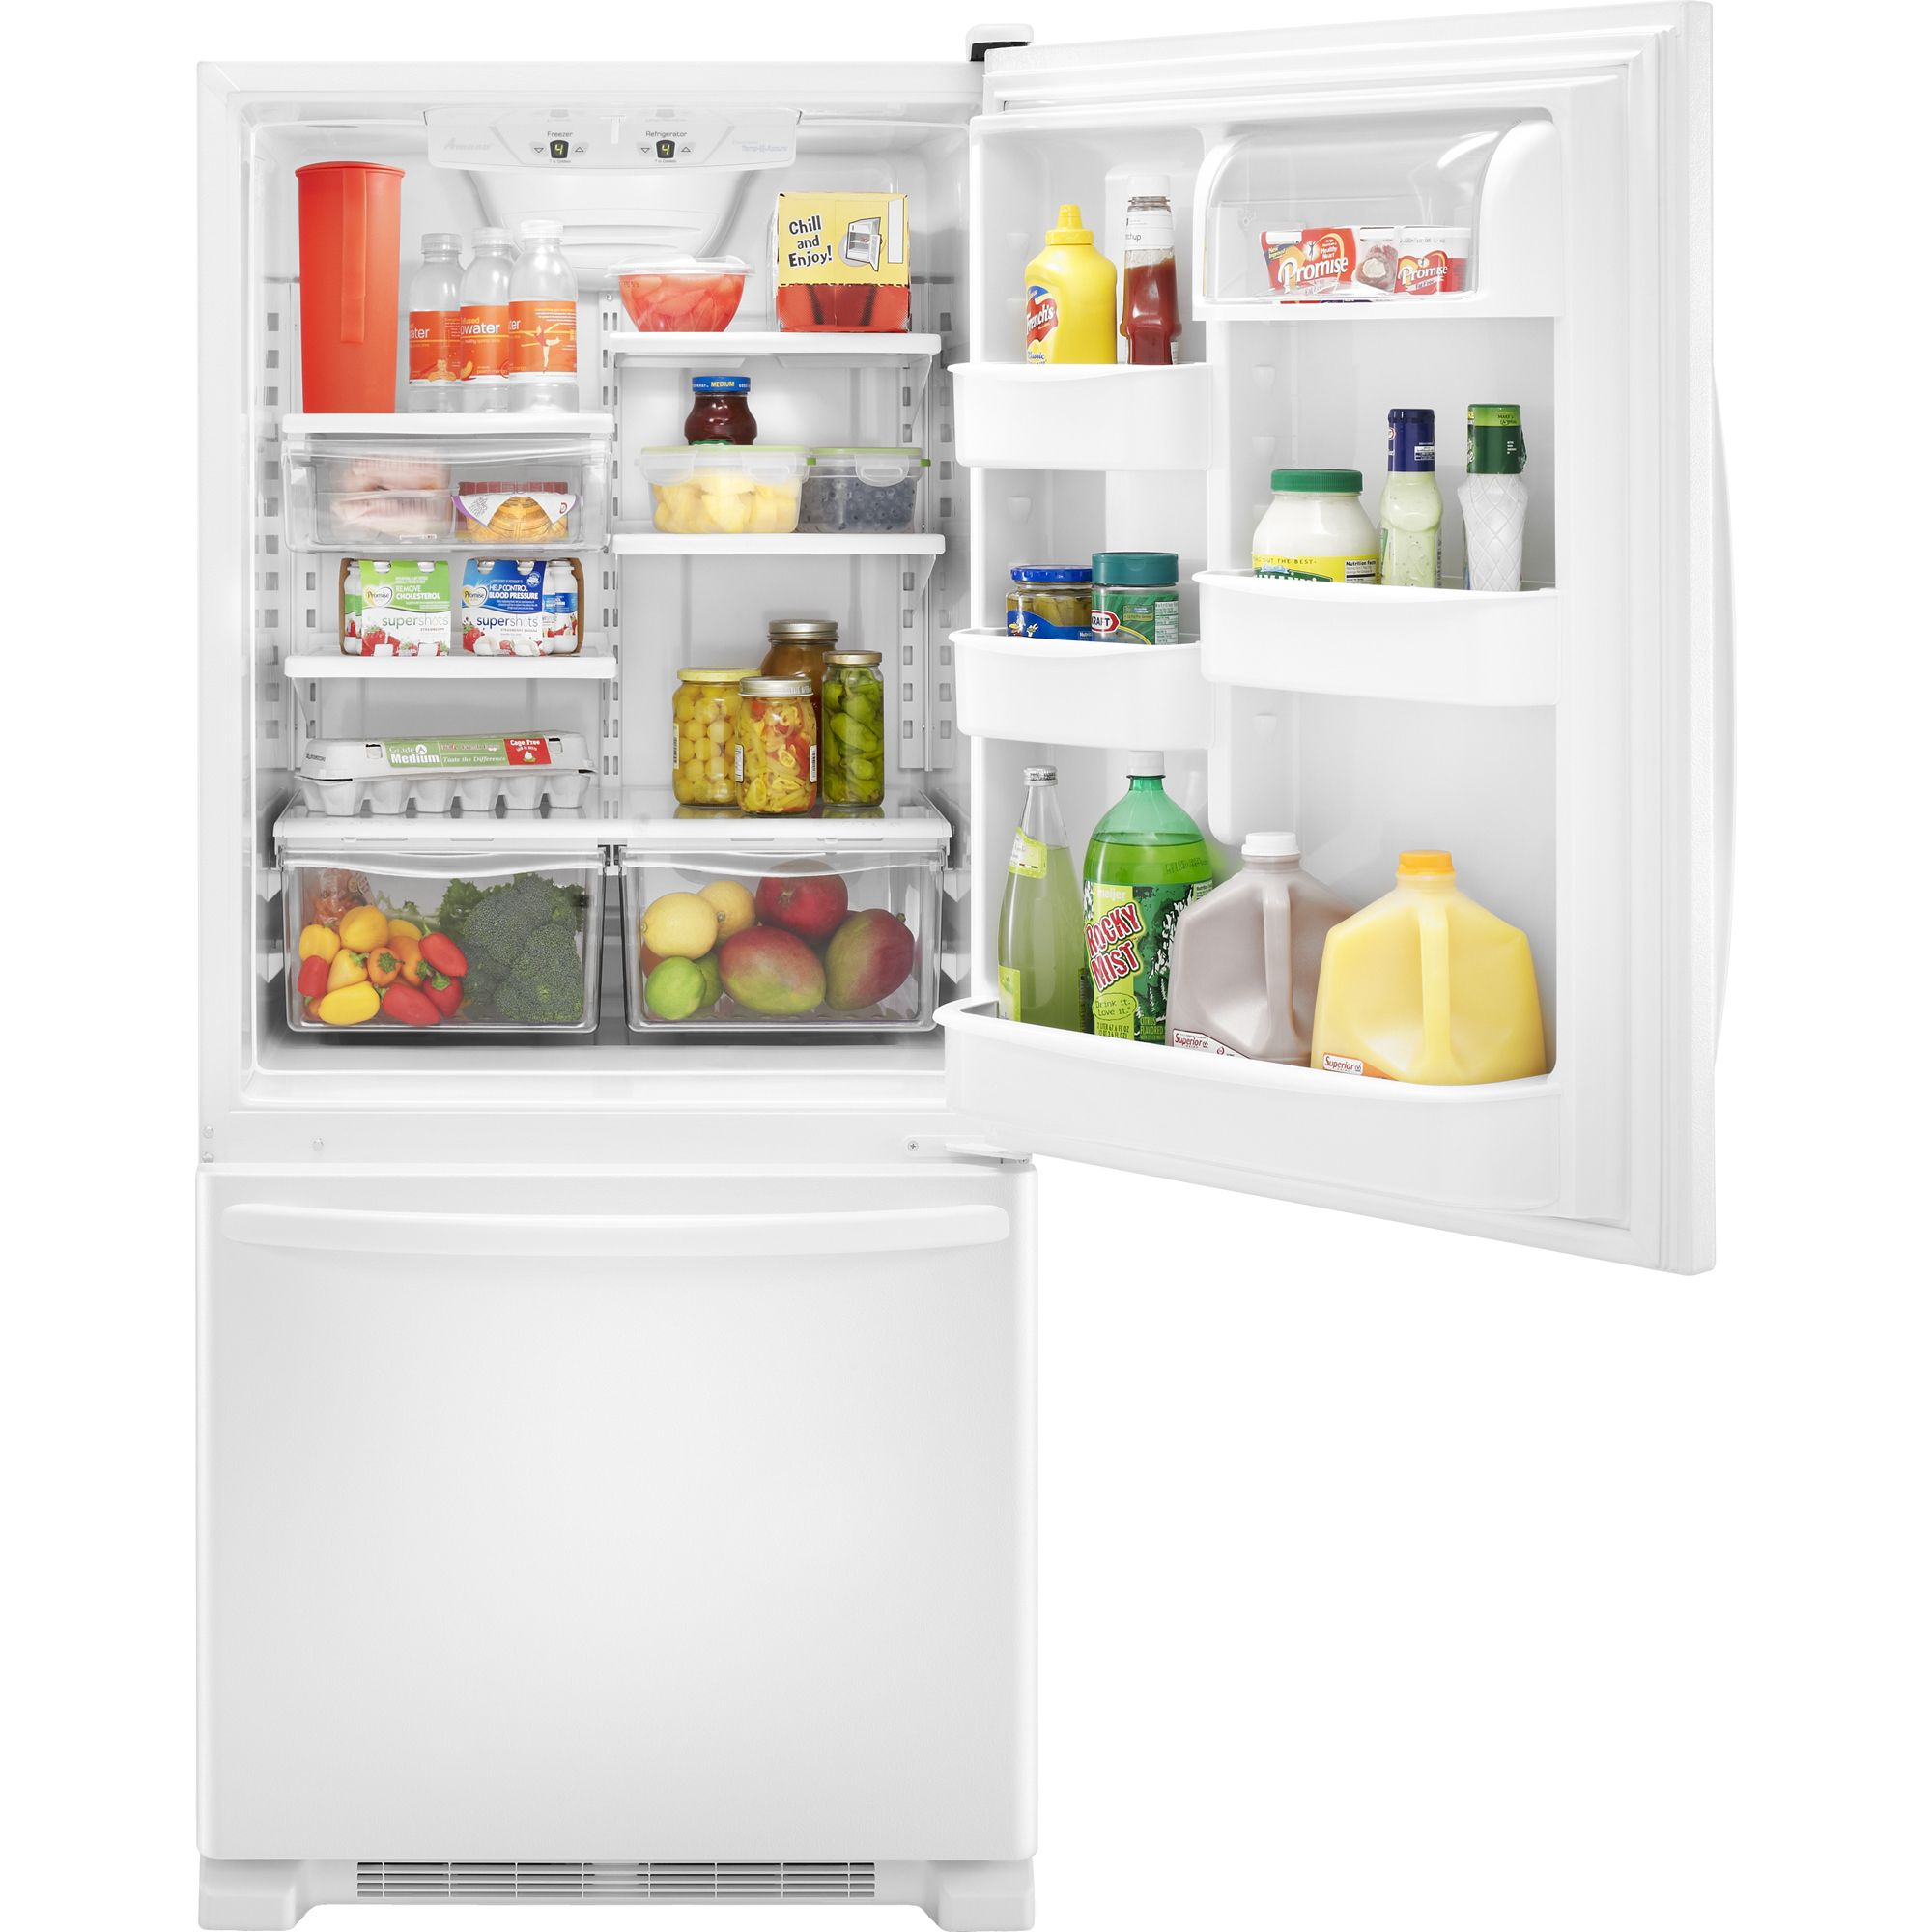 Amana 18.5 cu. ft. Single Door Bottom Freezer Refrigerator - White